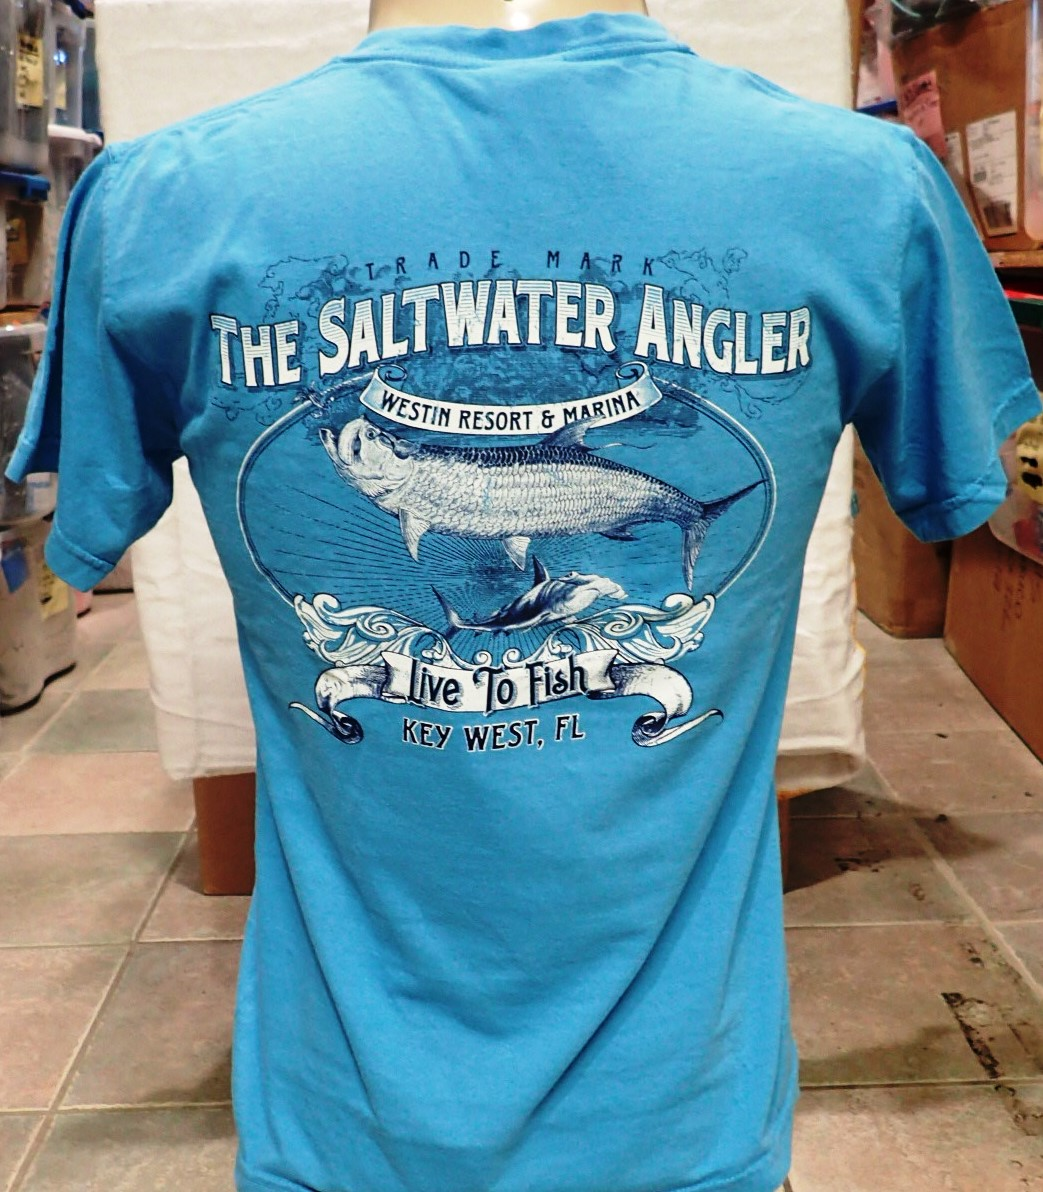 Key west fishing at saltwater angler key west fishing for West marine fishing shirts